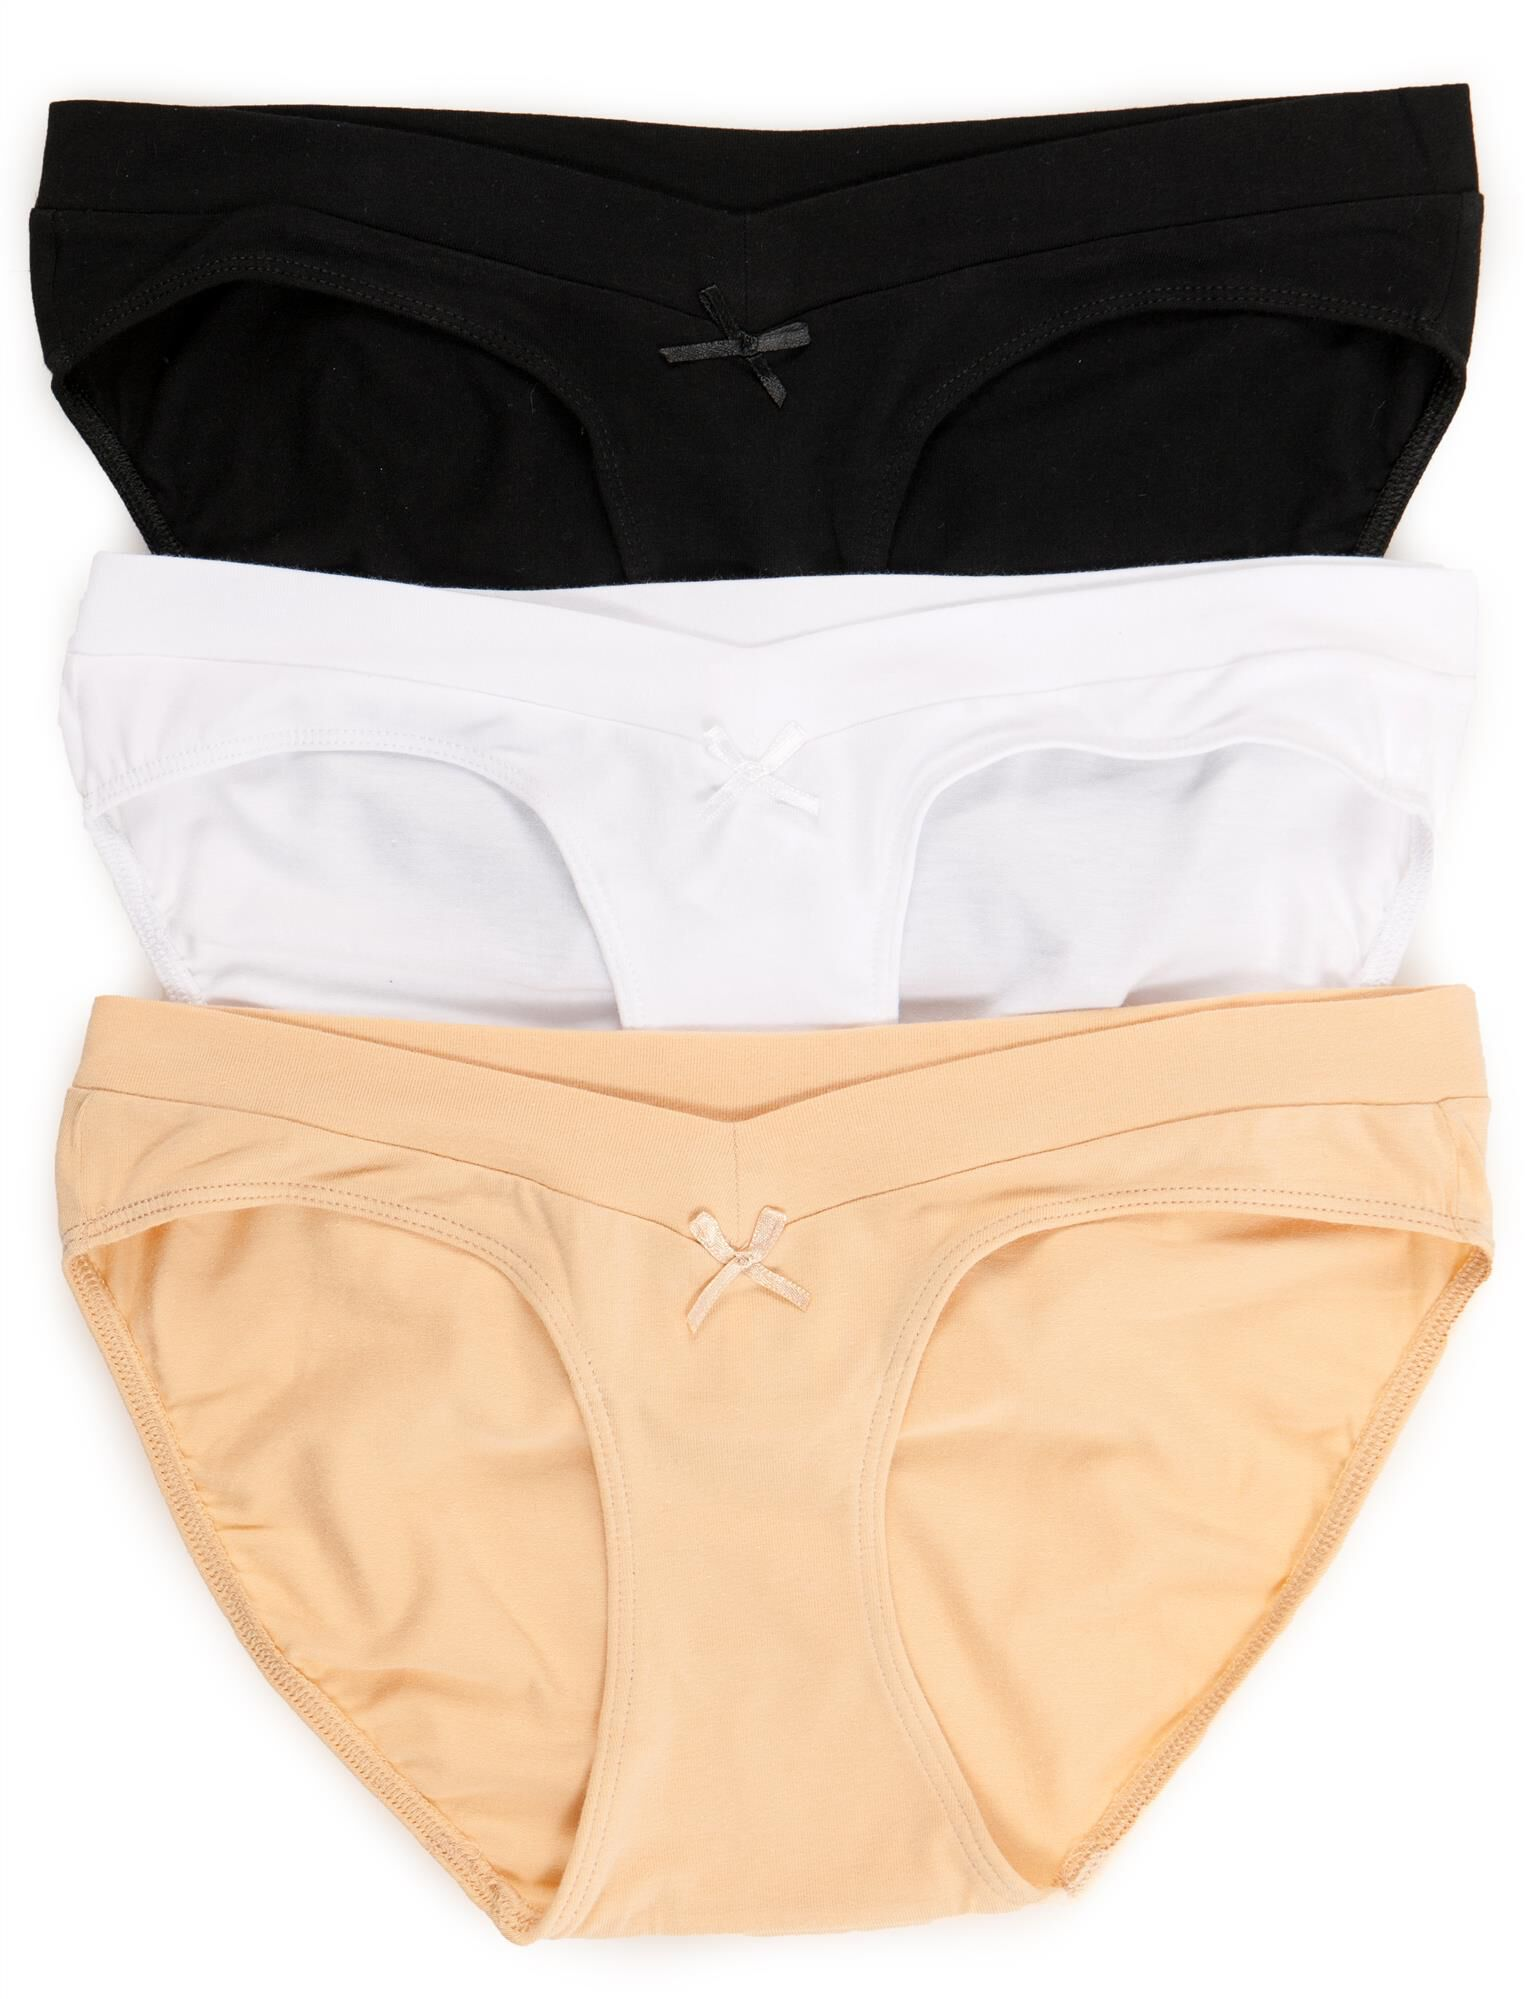 Maternity Hipster Panties (3 Pack)- Neutrals